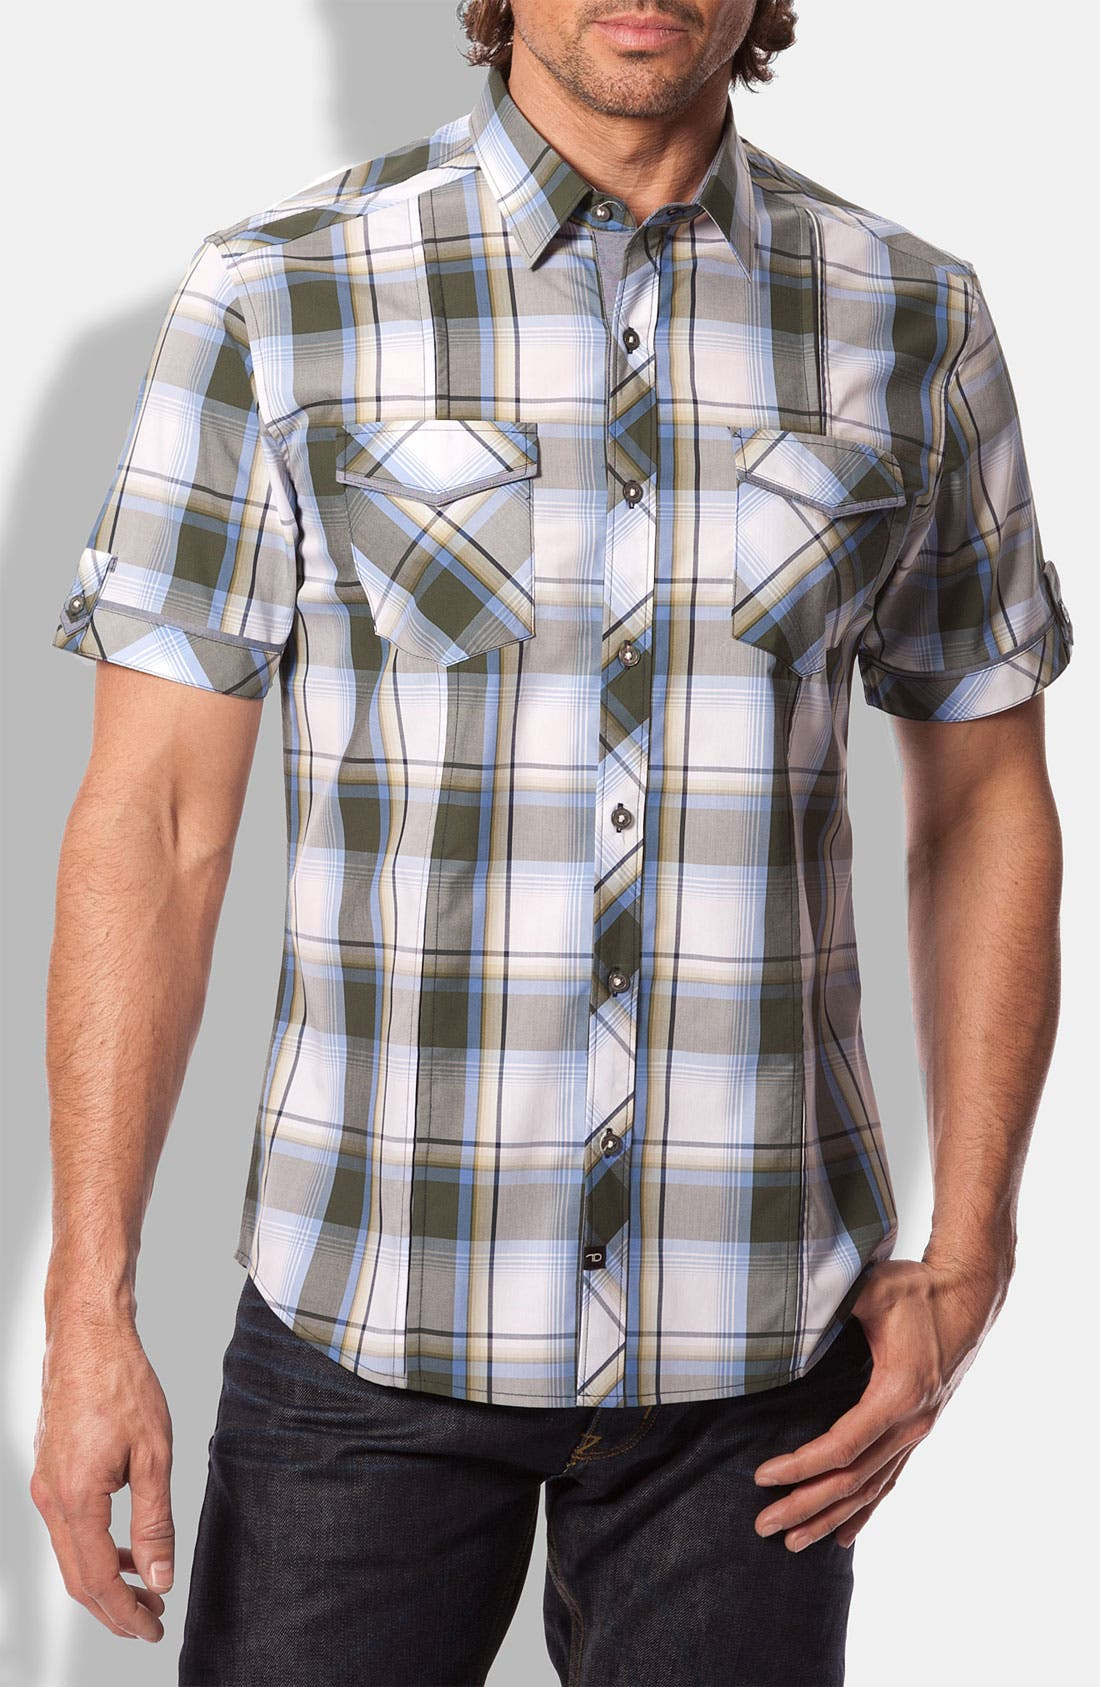 Main Image - 7 Diamonds 'Come Here My Dear' Plaid Woven Short Sleeve Shirt